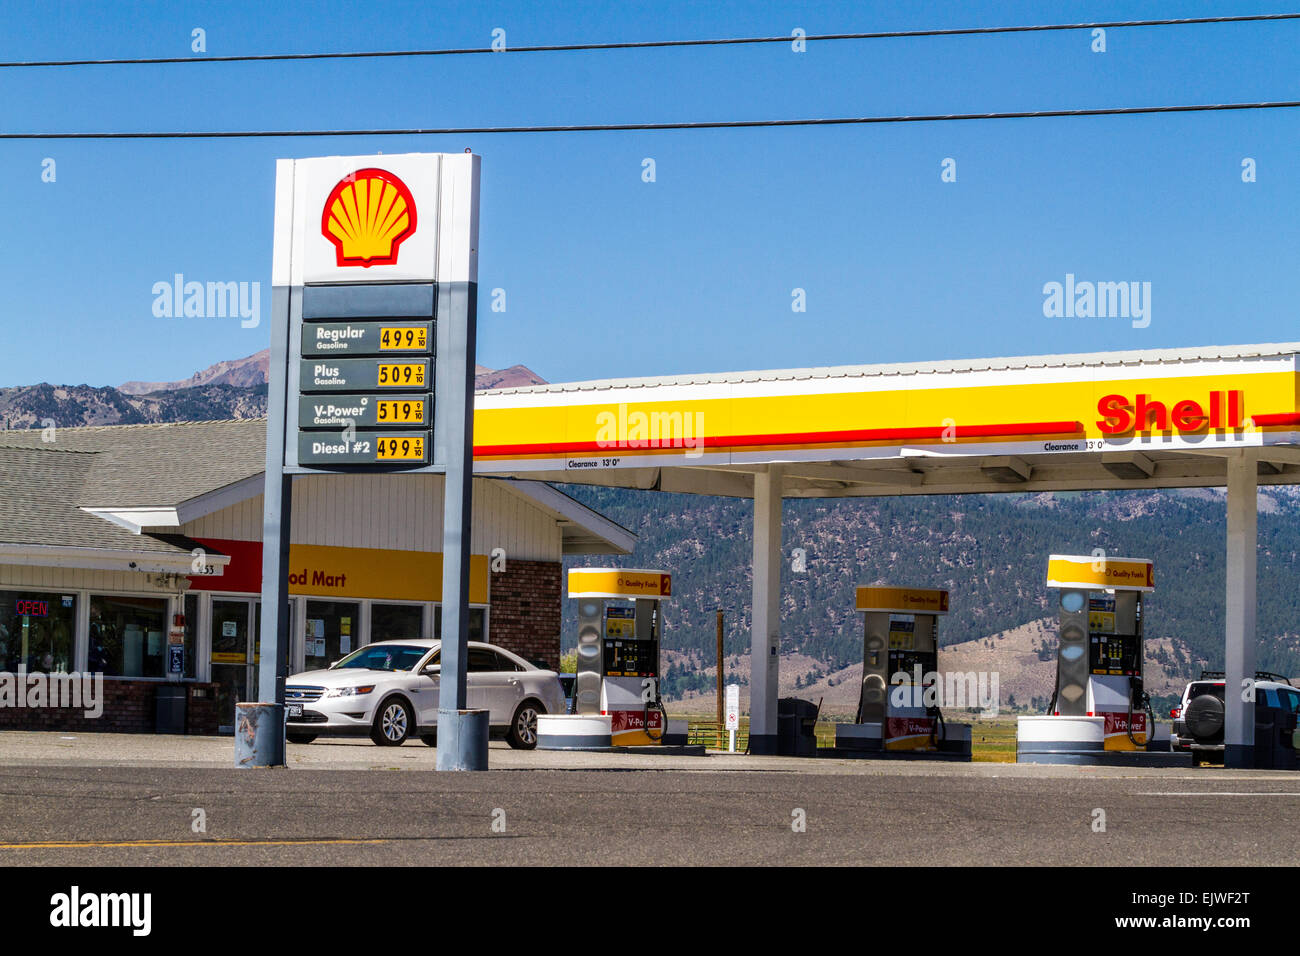 Gas Stations In California >> The Shell Gas Station In Bridgeport California With Very